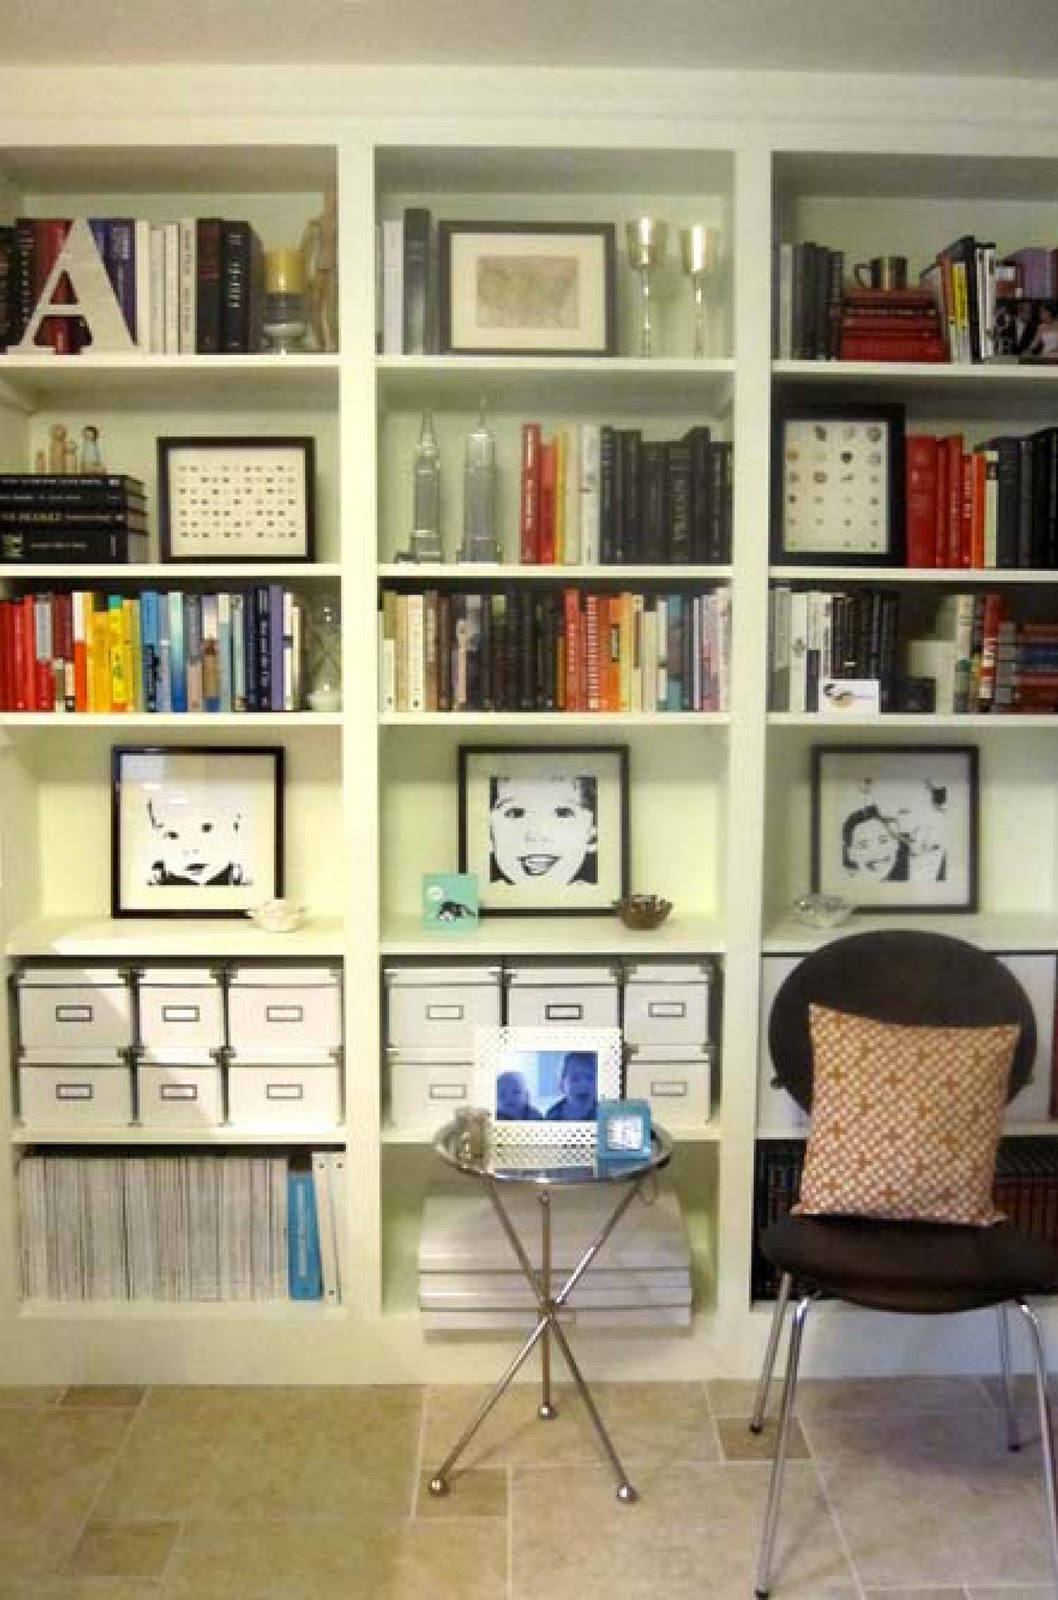 shelves bookshelf bookshelves books bookcase office inspiration storage shelf different bookcases humble feature friday pretty broke perfectly containers organized them